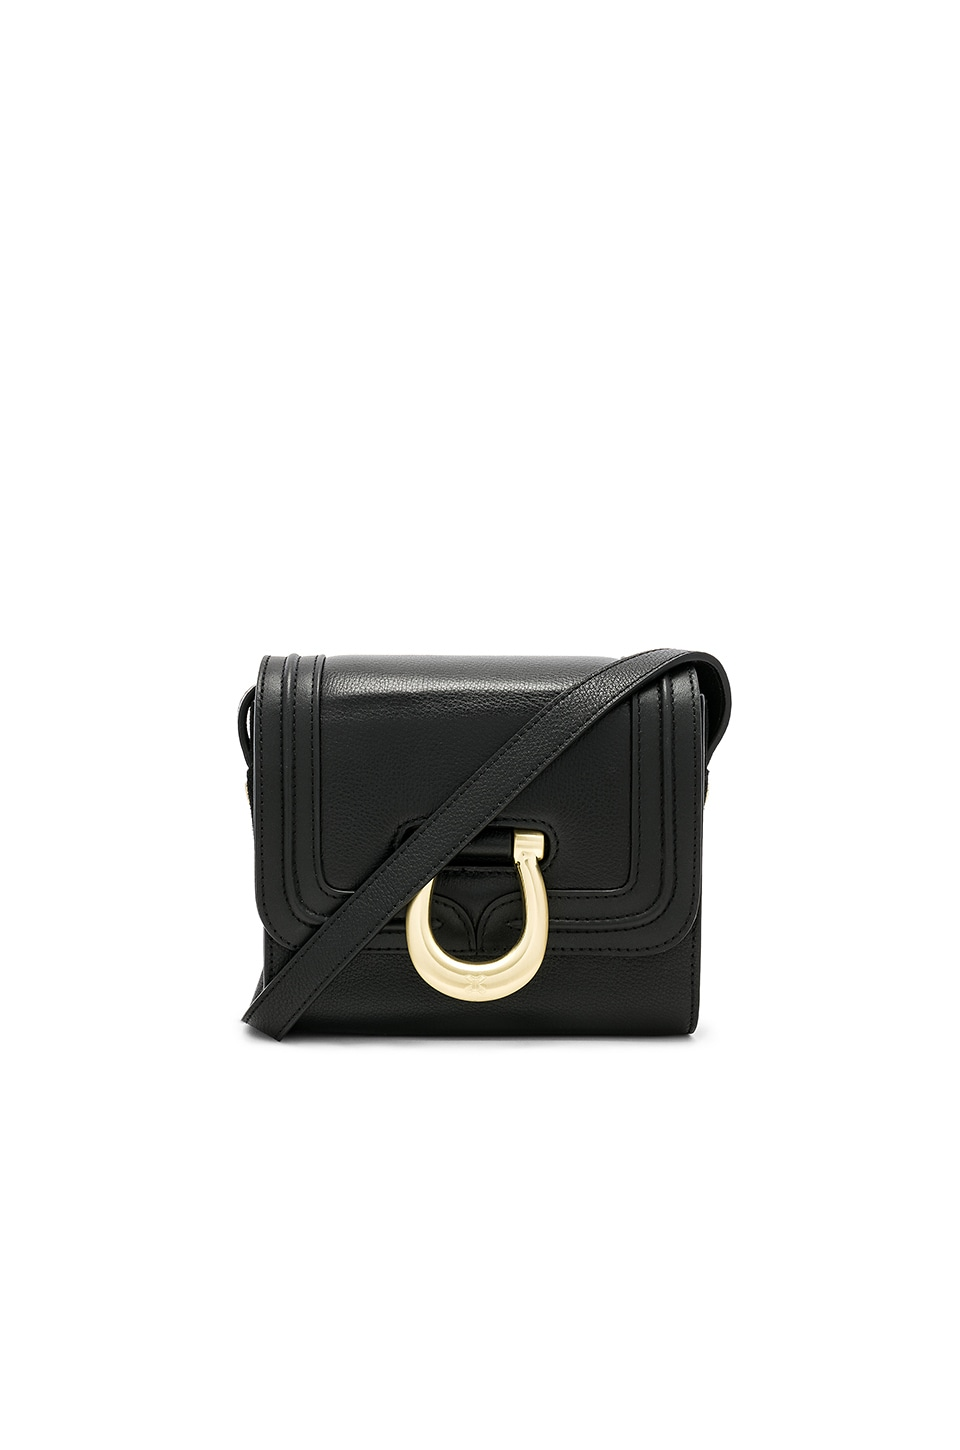 Sancia The Remy Mini Bag in Black